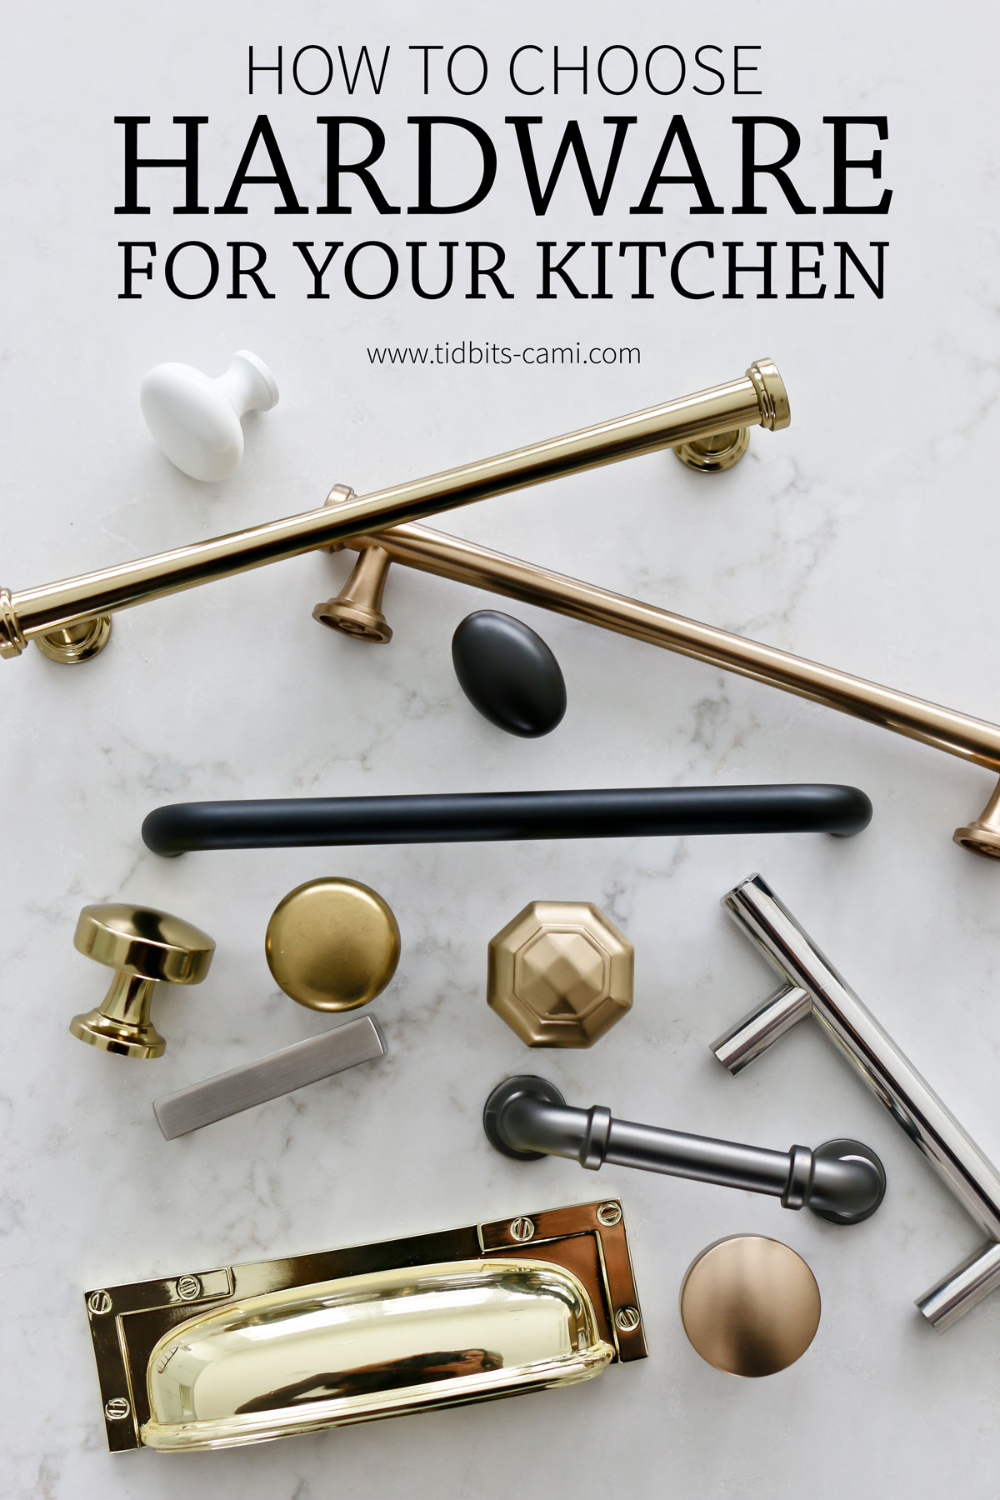 Choosing hardware can be tough! I'm sharing the 5 step process I used to pick the hardware for our new kitchen and giving you a glimpse at what it looks like. #kitchenhardware #hardware #cabinethardware #camitidbits